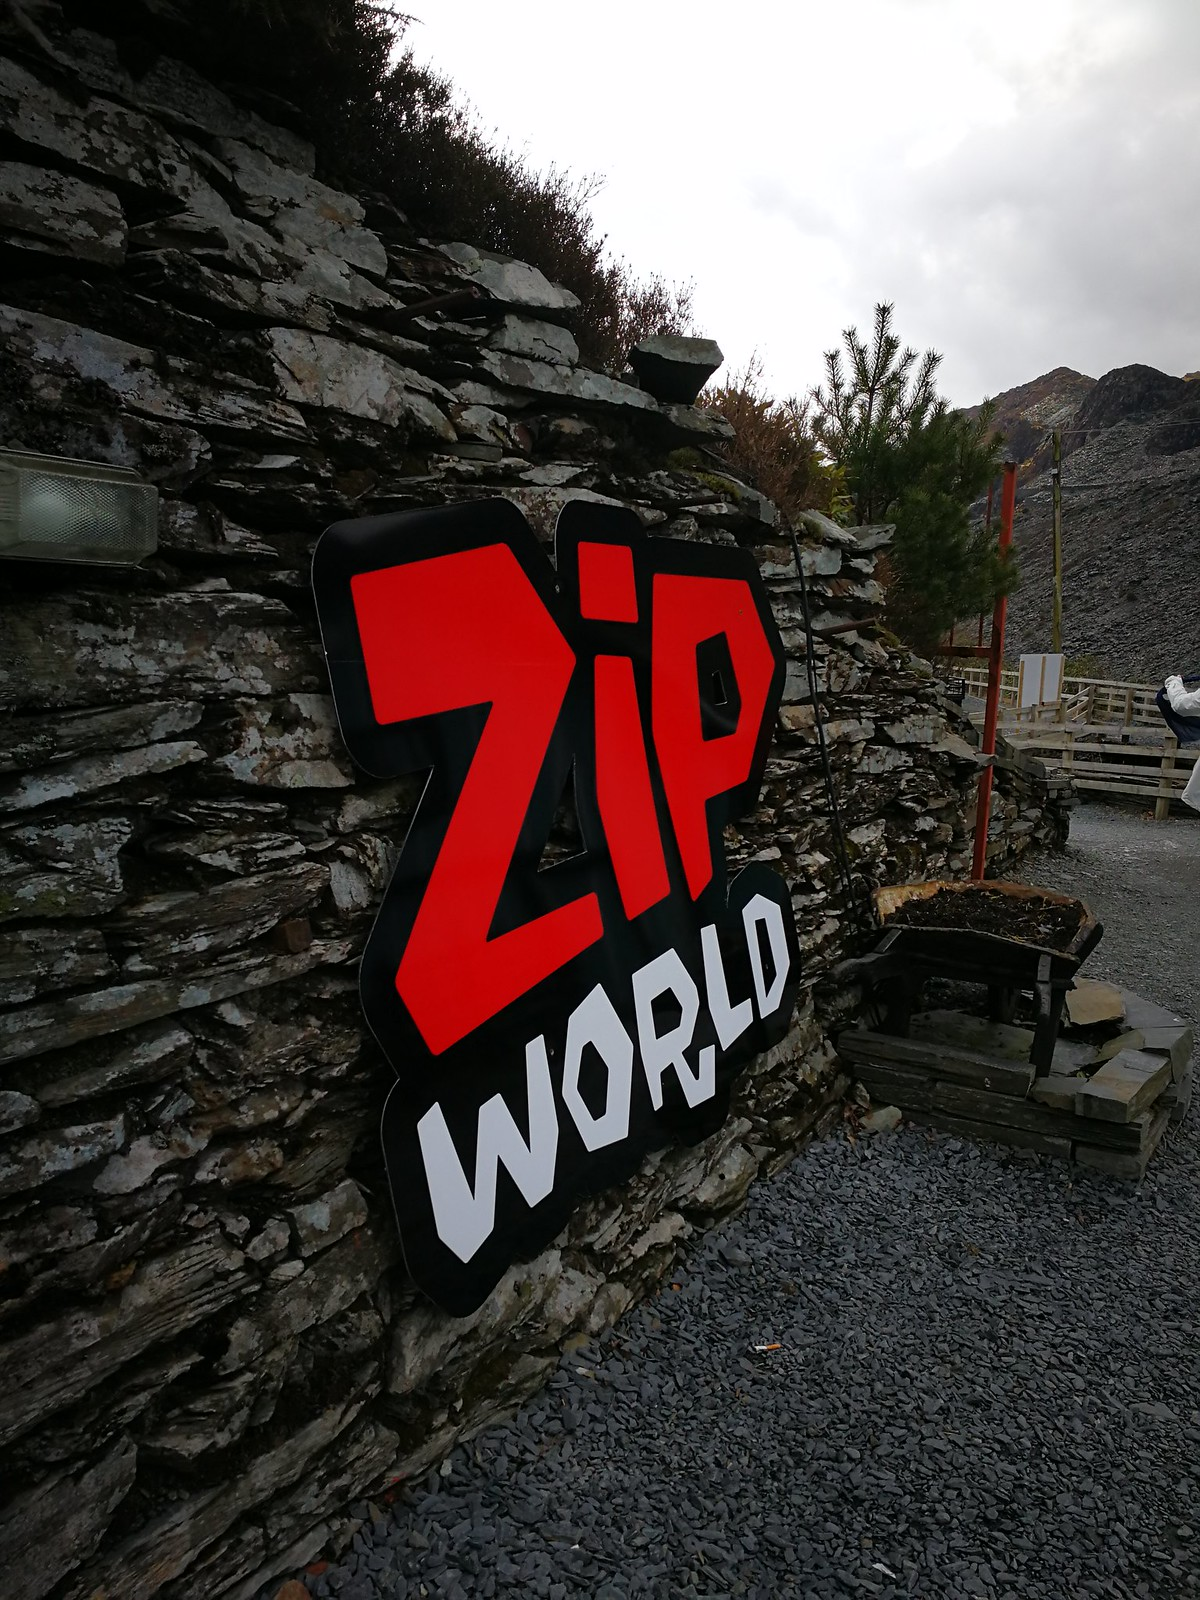 Snowdon Zip World